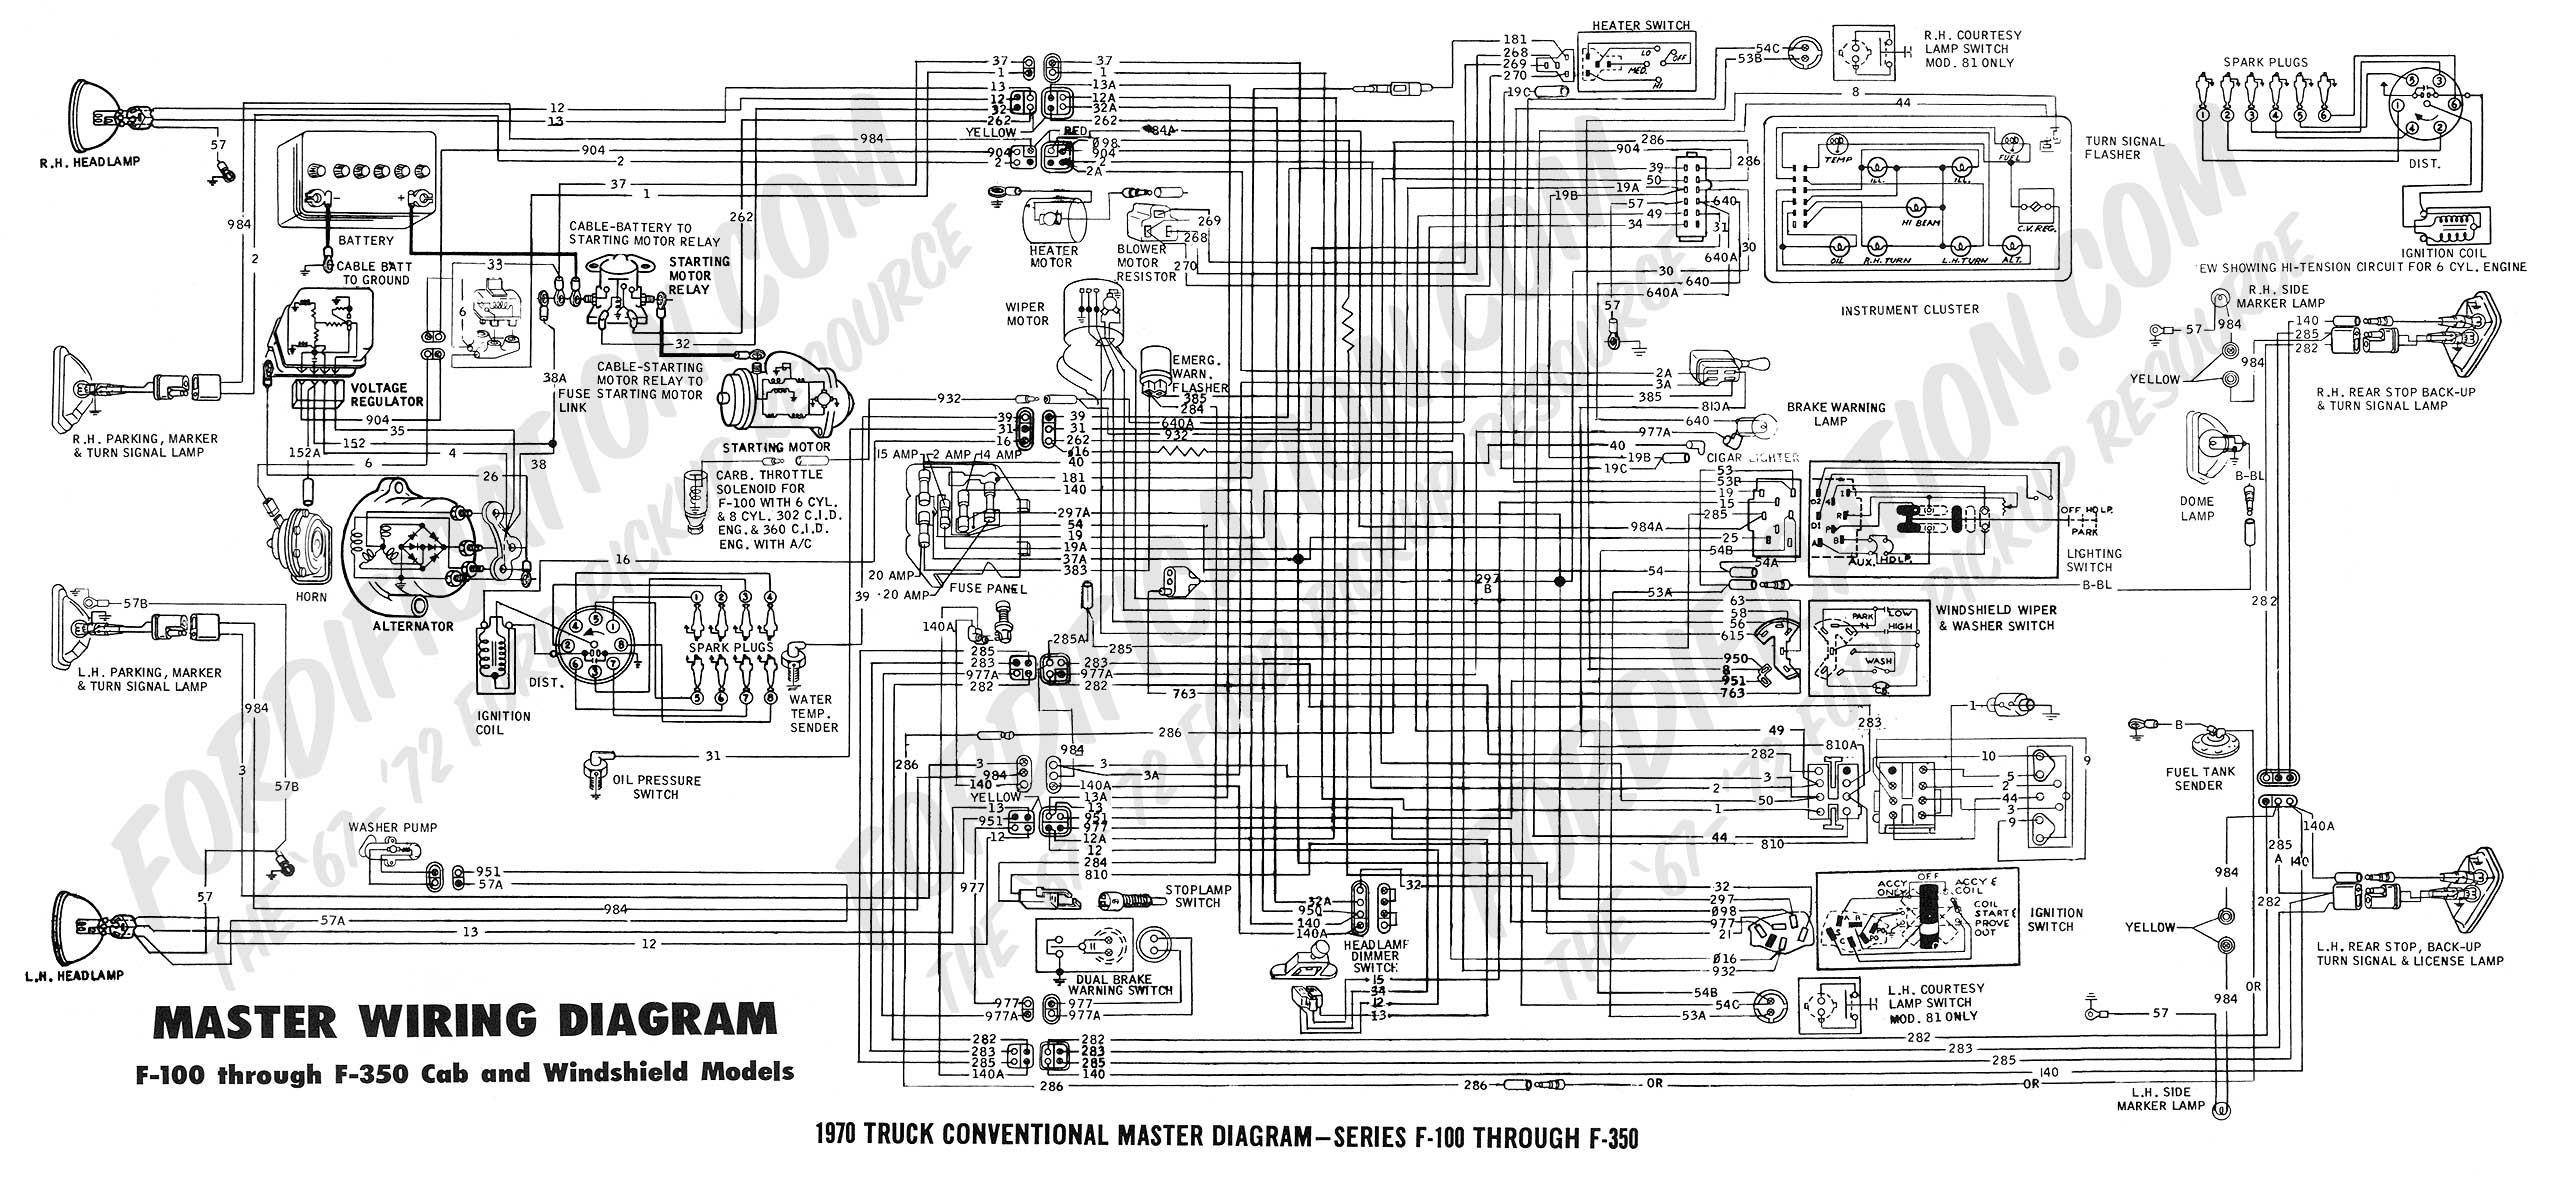 wiring diagram 70_master ford truck technical drawings and schematics section h wiring Rock Layes Tilt Diagram at creativeand.co